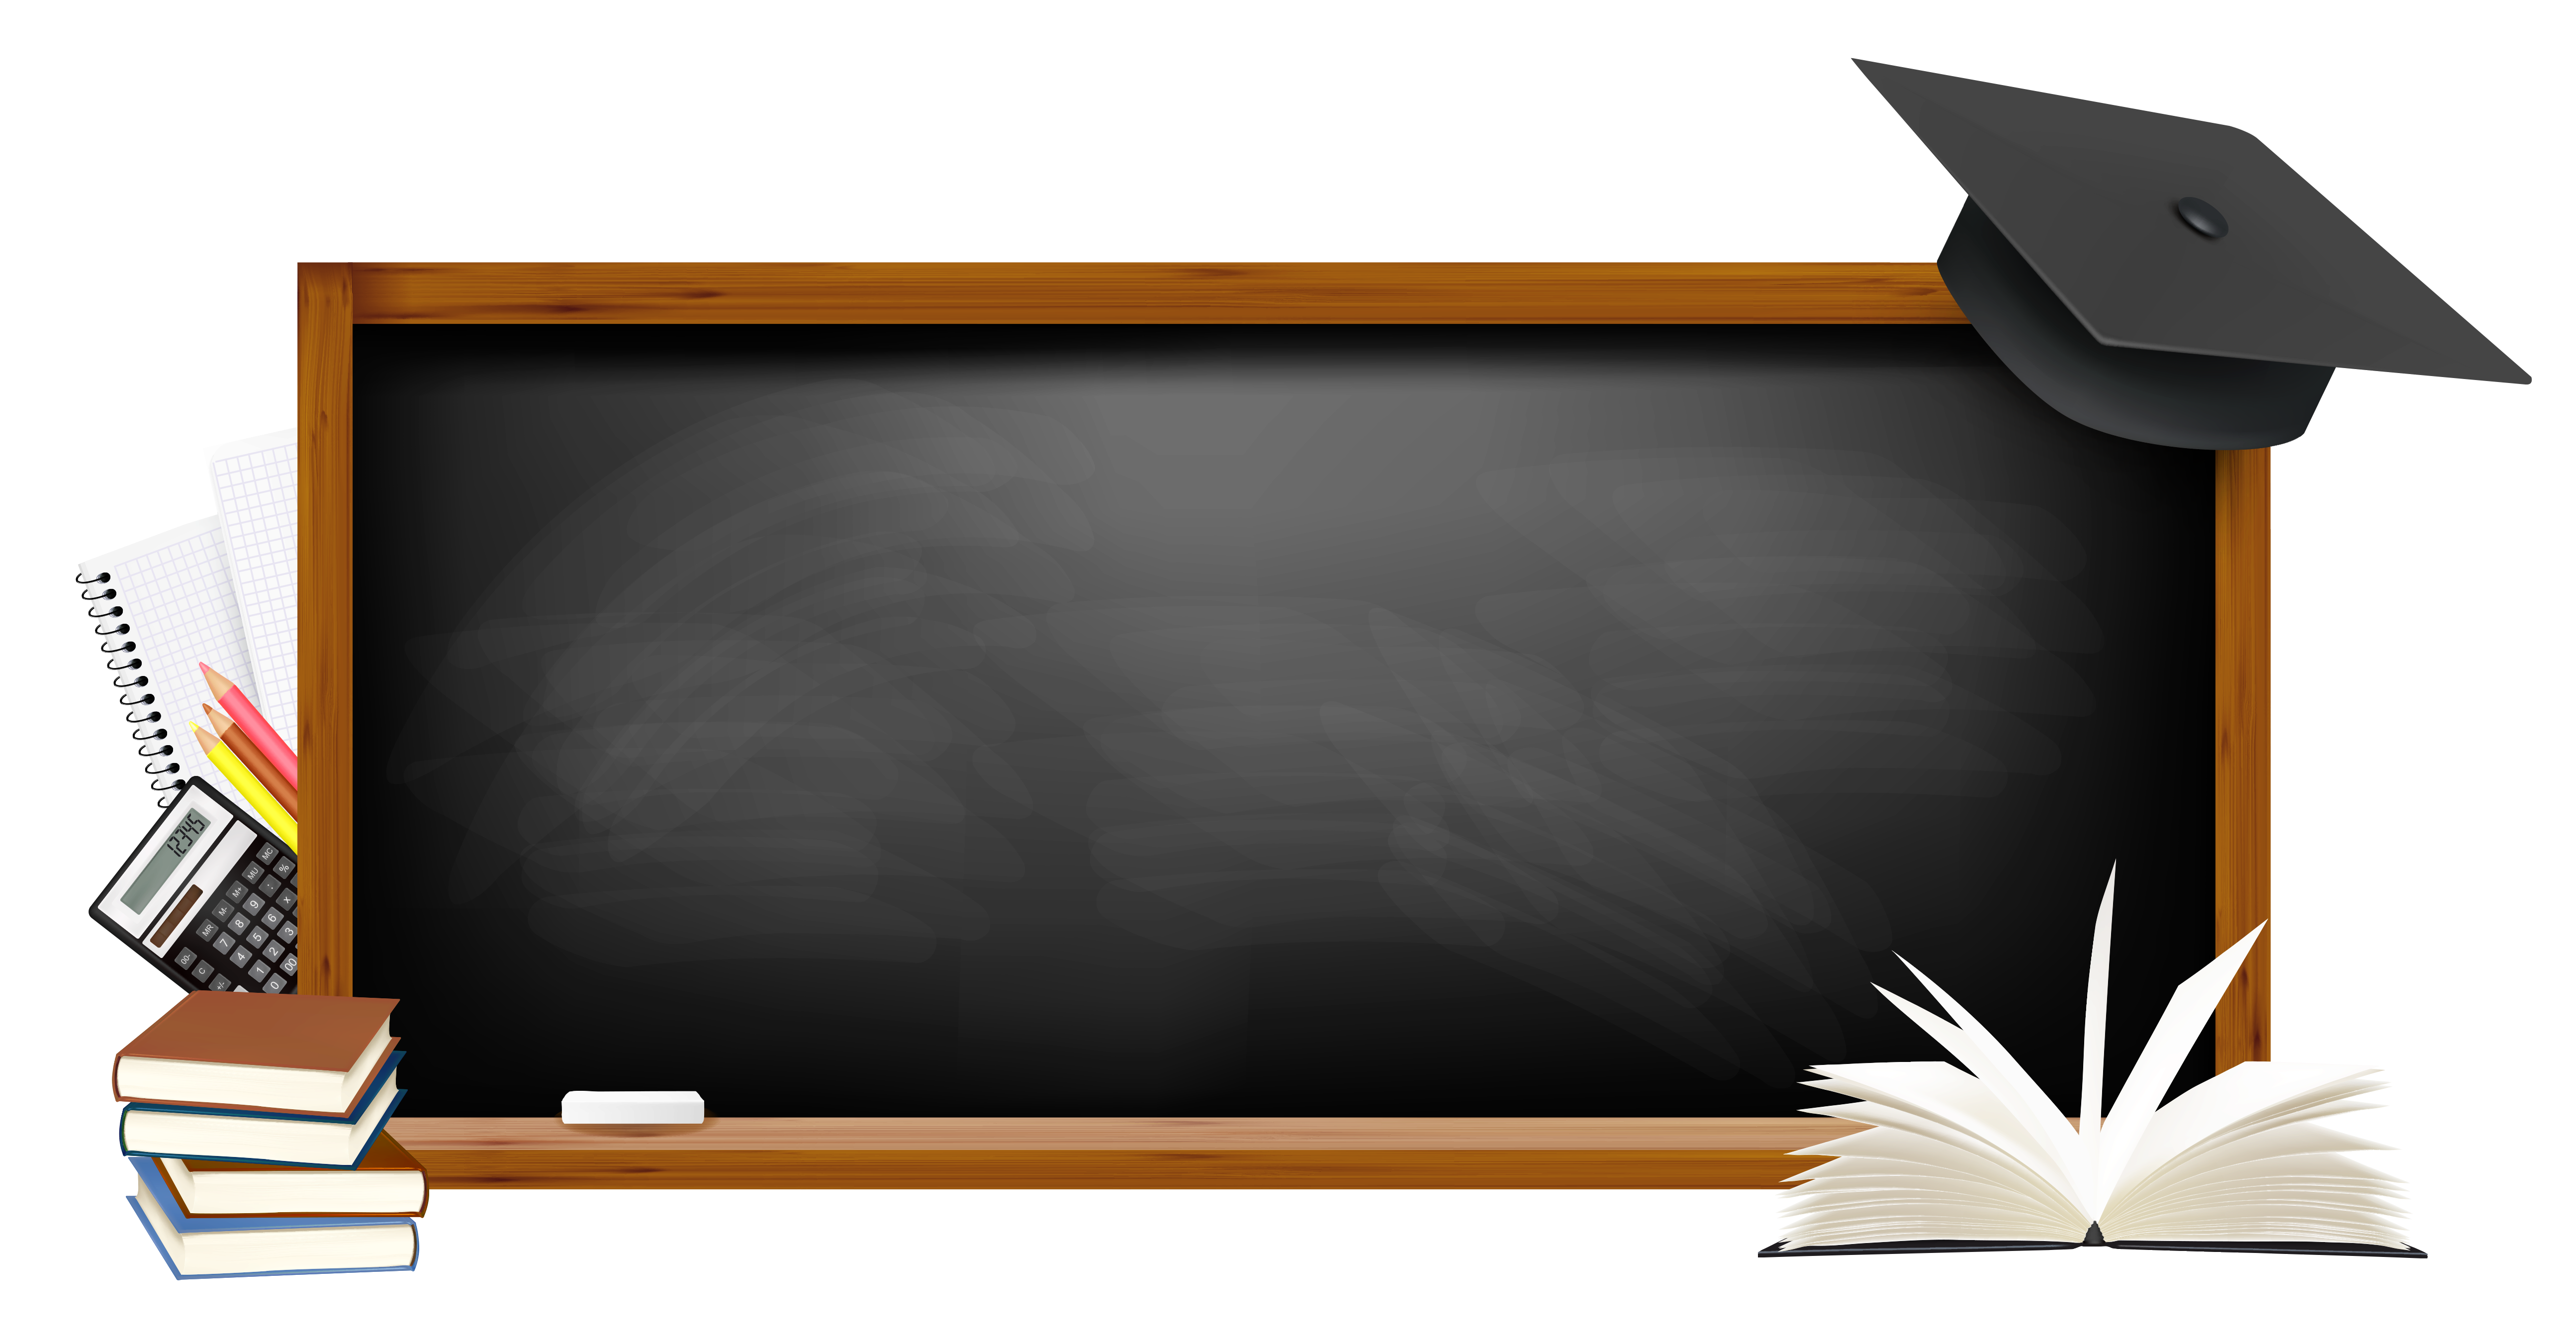 jpg black and white library Black school png picture. Board clipart transparent.